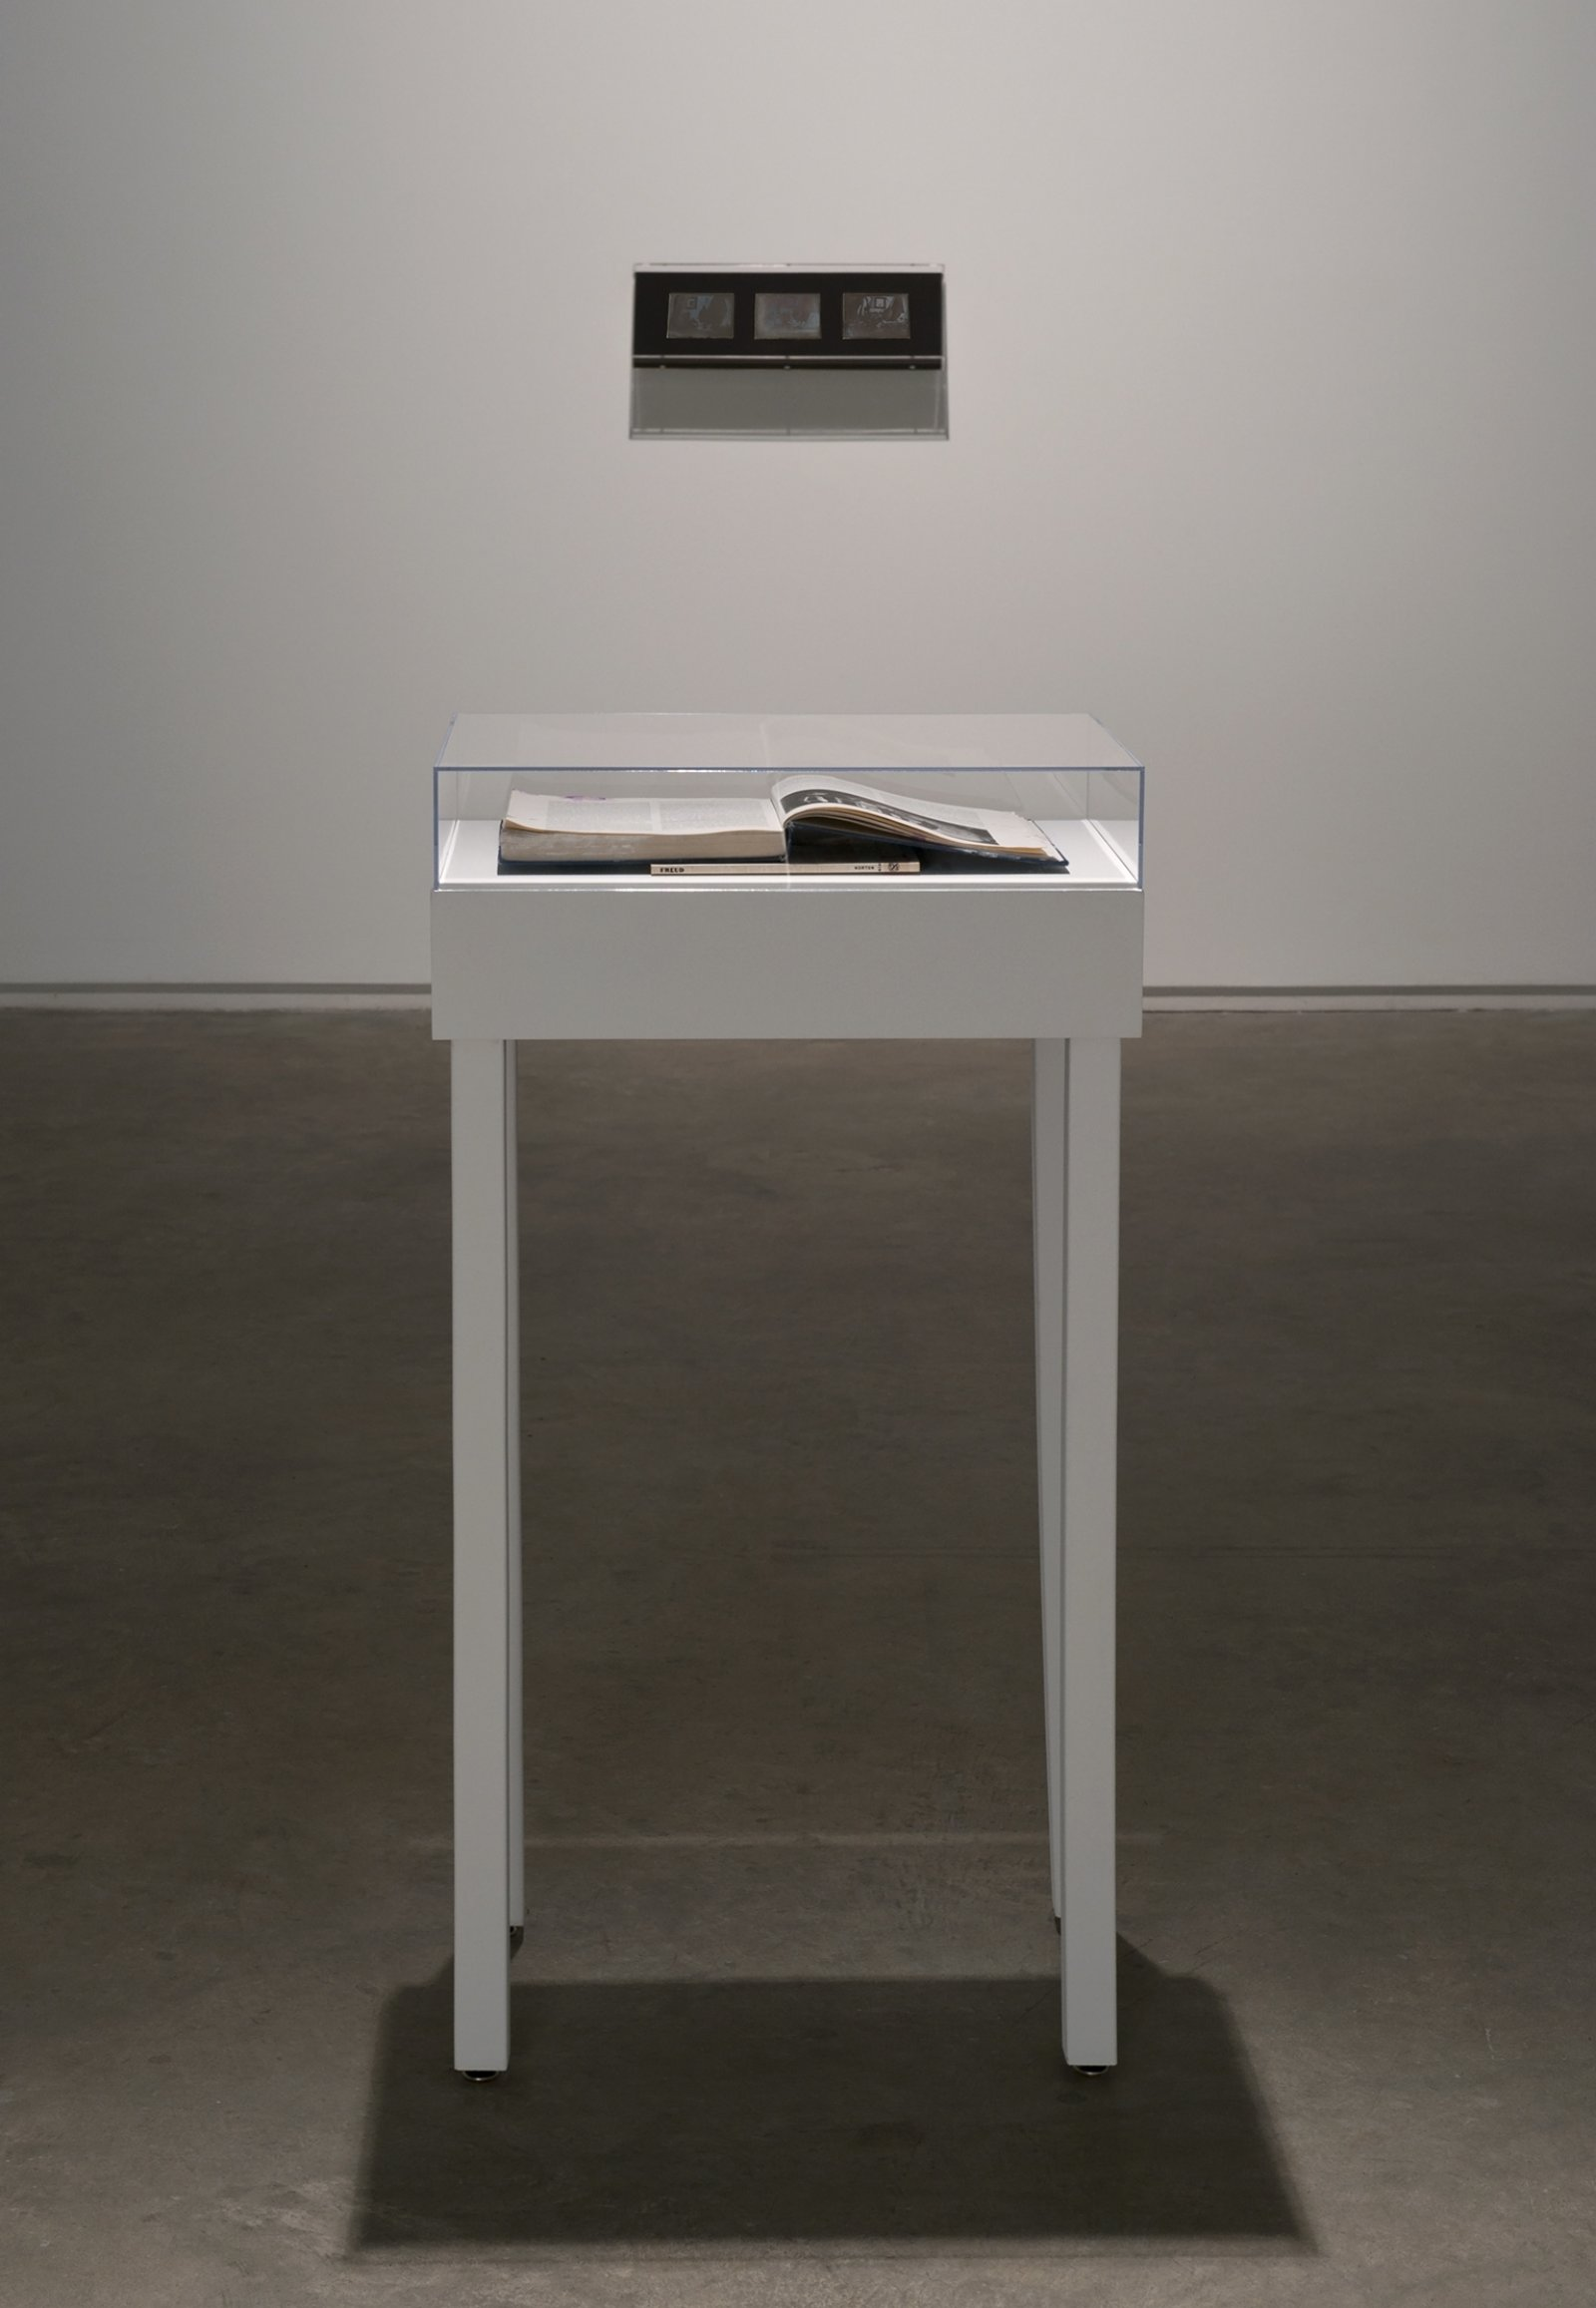 Julia Feyrer, History of Photography from The artist's studio, 2012, mixed media, dimensions variable by Julia Feyrer